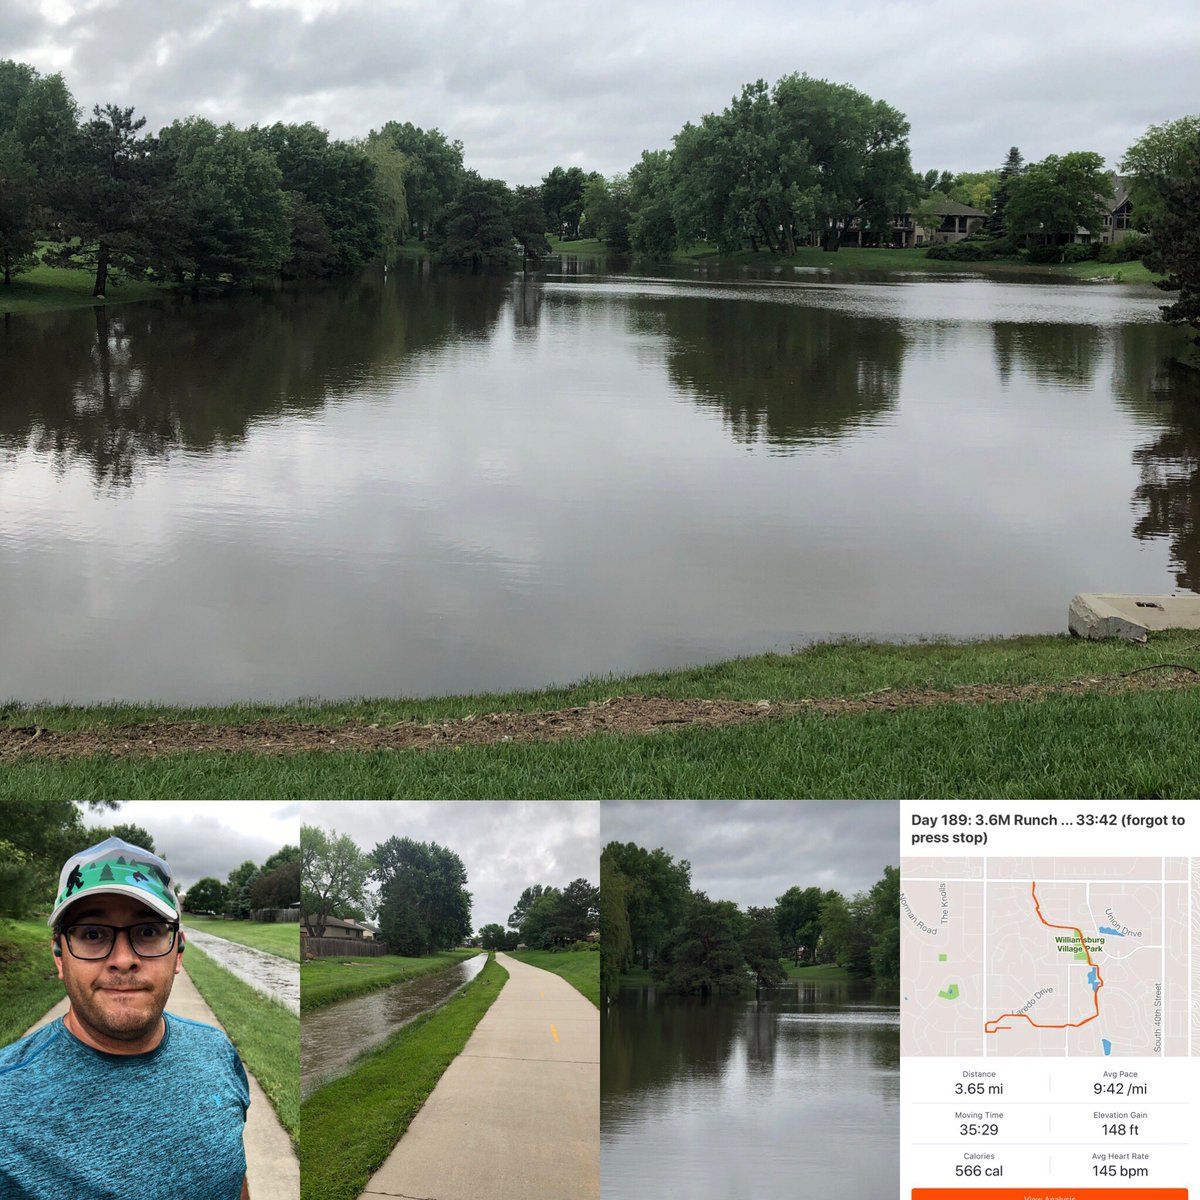 #RunStreak Day 189: 3.6M Runch before meeting my friend for real lunch. We've had some rain ...   I forgot to press stop when I finished, and added an extra set of time. I did see the time, 33:42, but it didn't record. #BibChat #RunChat #TeamHeadsweats <br>http://pic.twitter.com/pdcxABLP6s